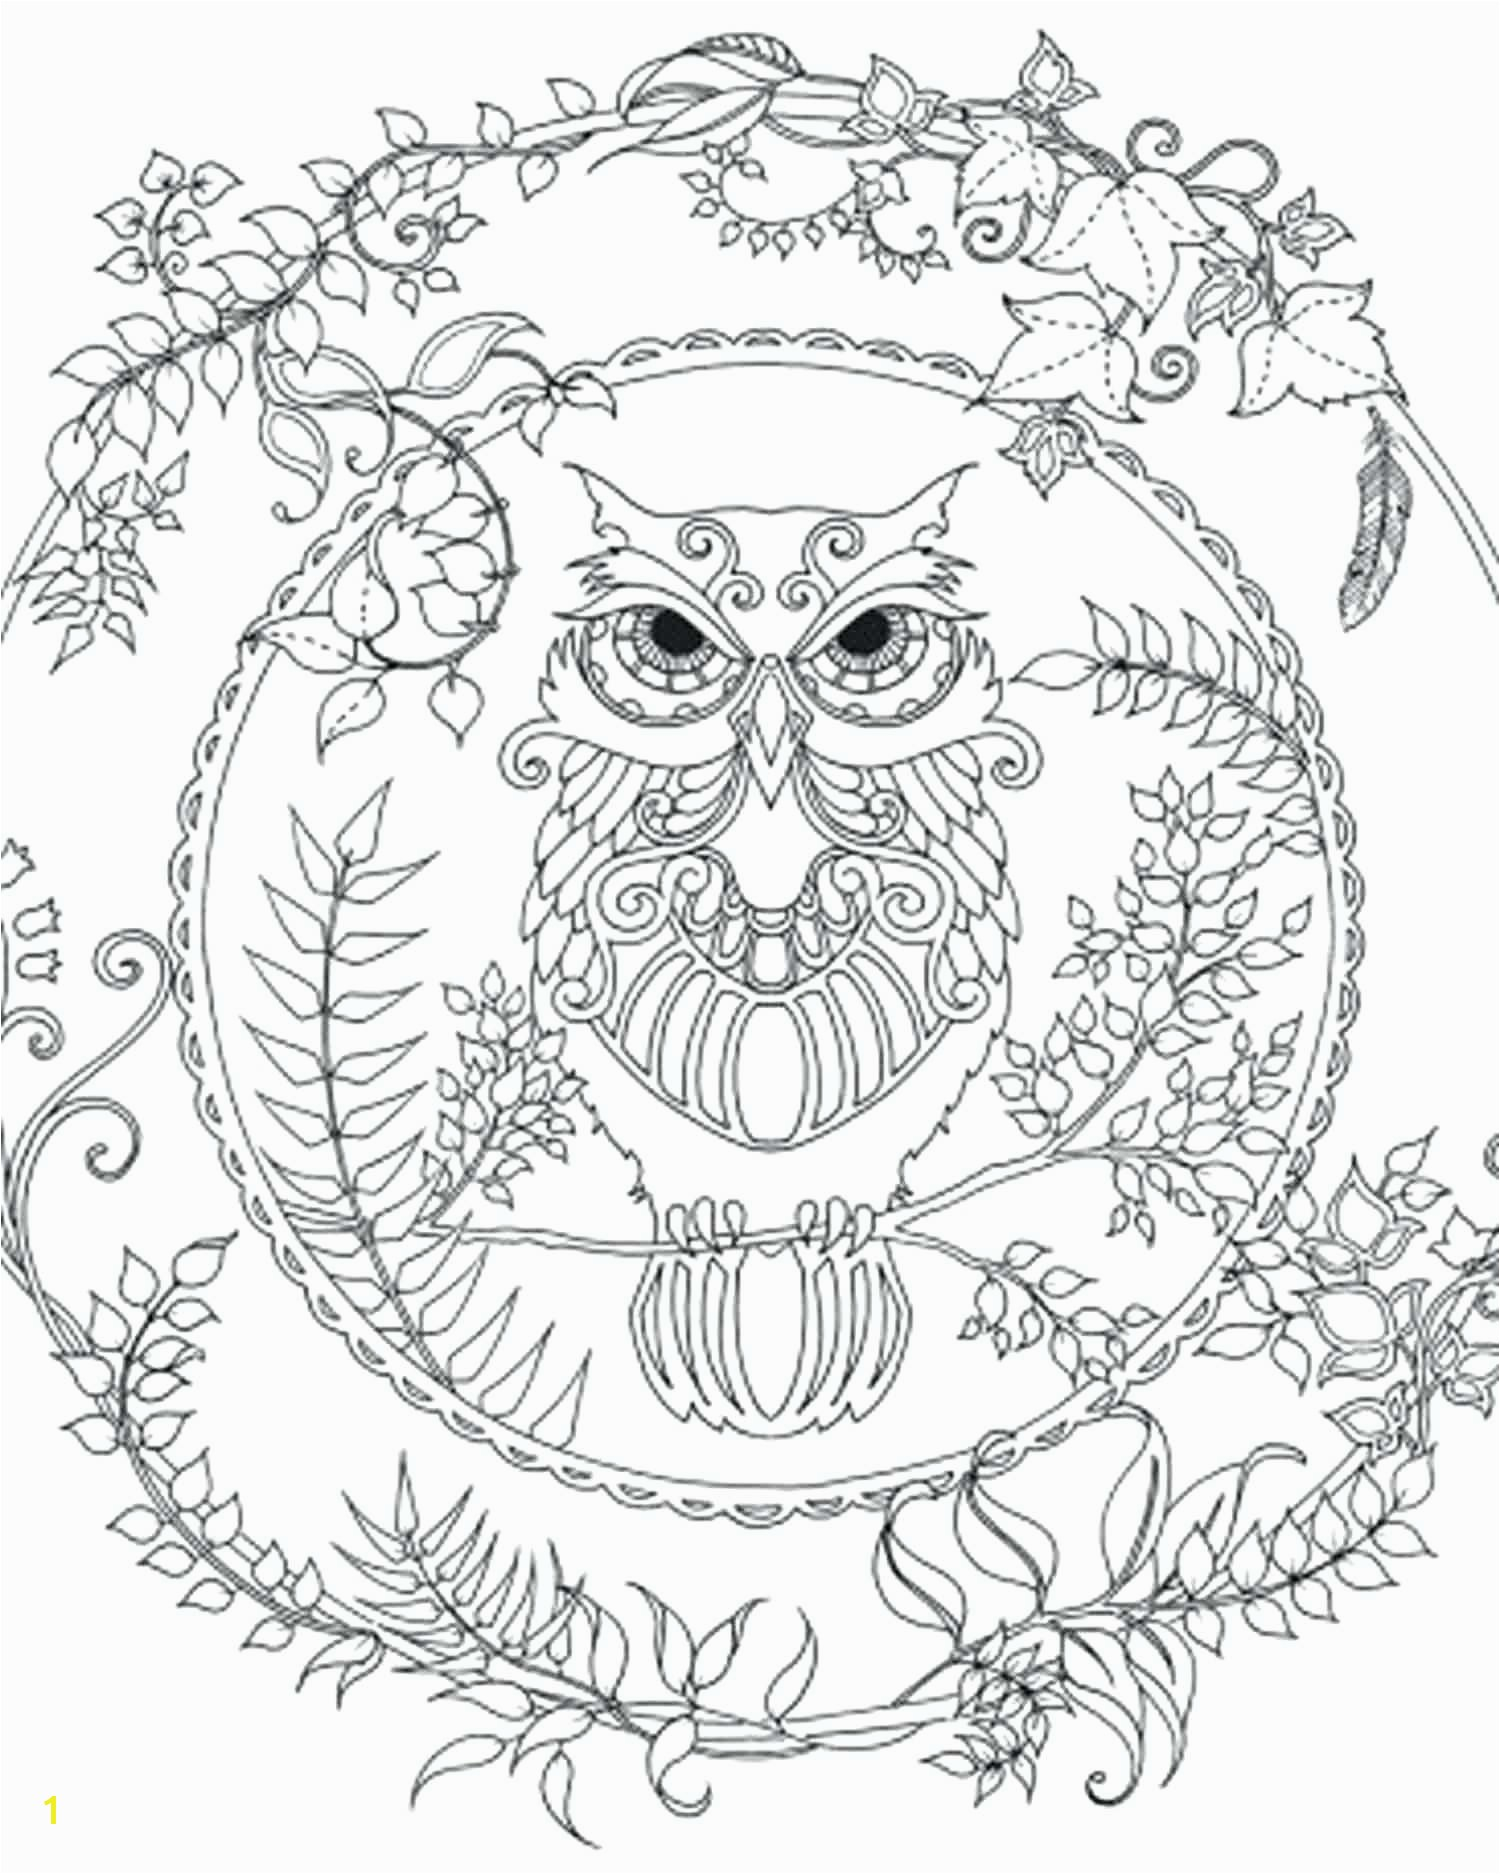 Adult Coloring Pages Owl Coloring Pages Coloring Pages Owls Free Printable Free